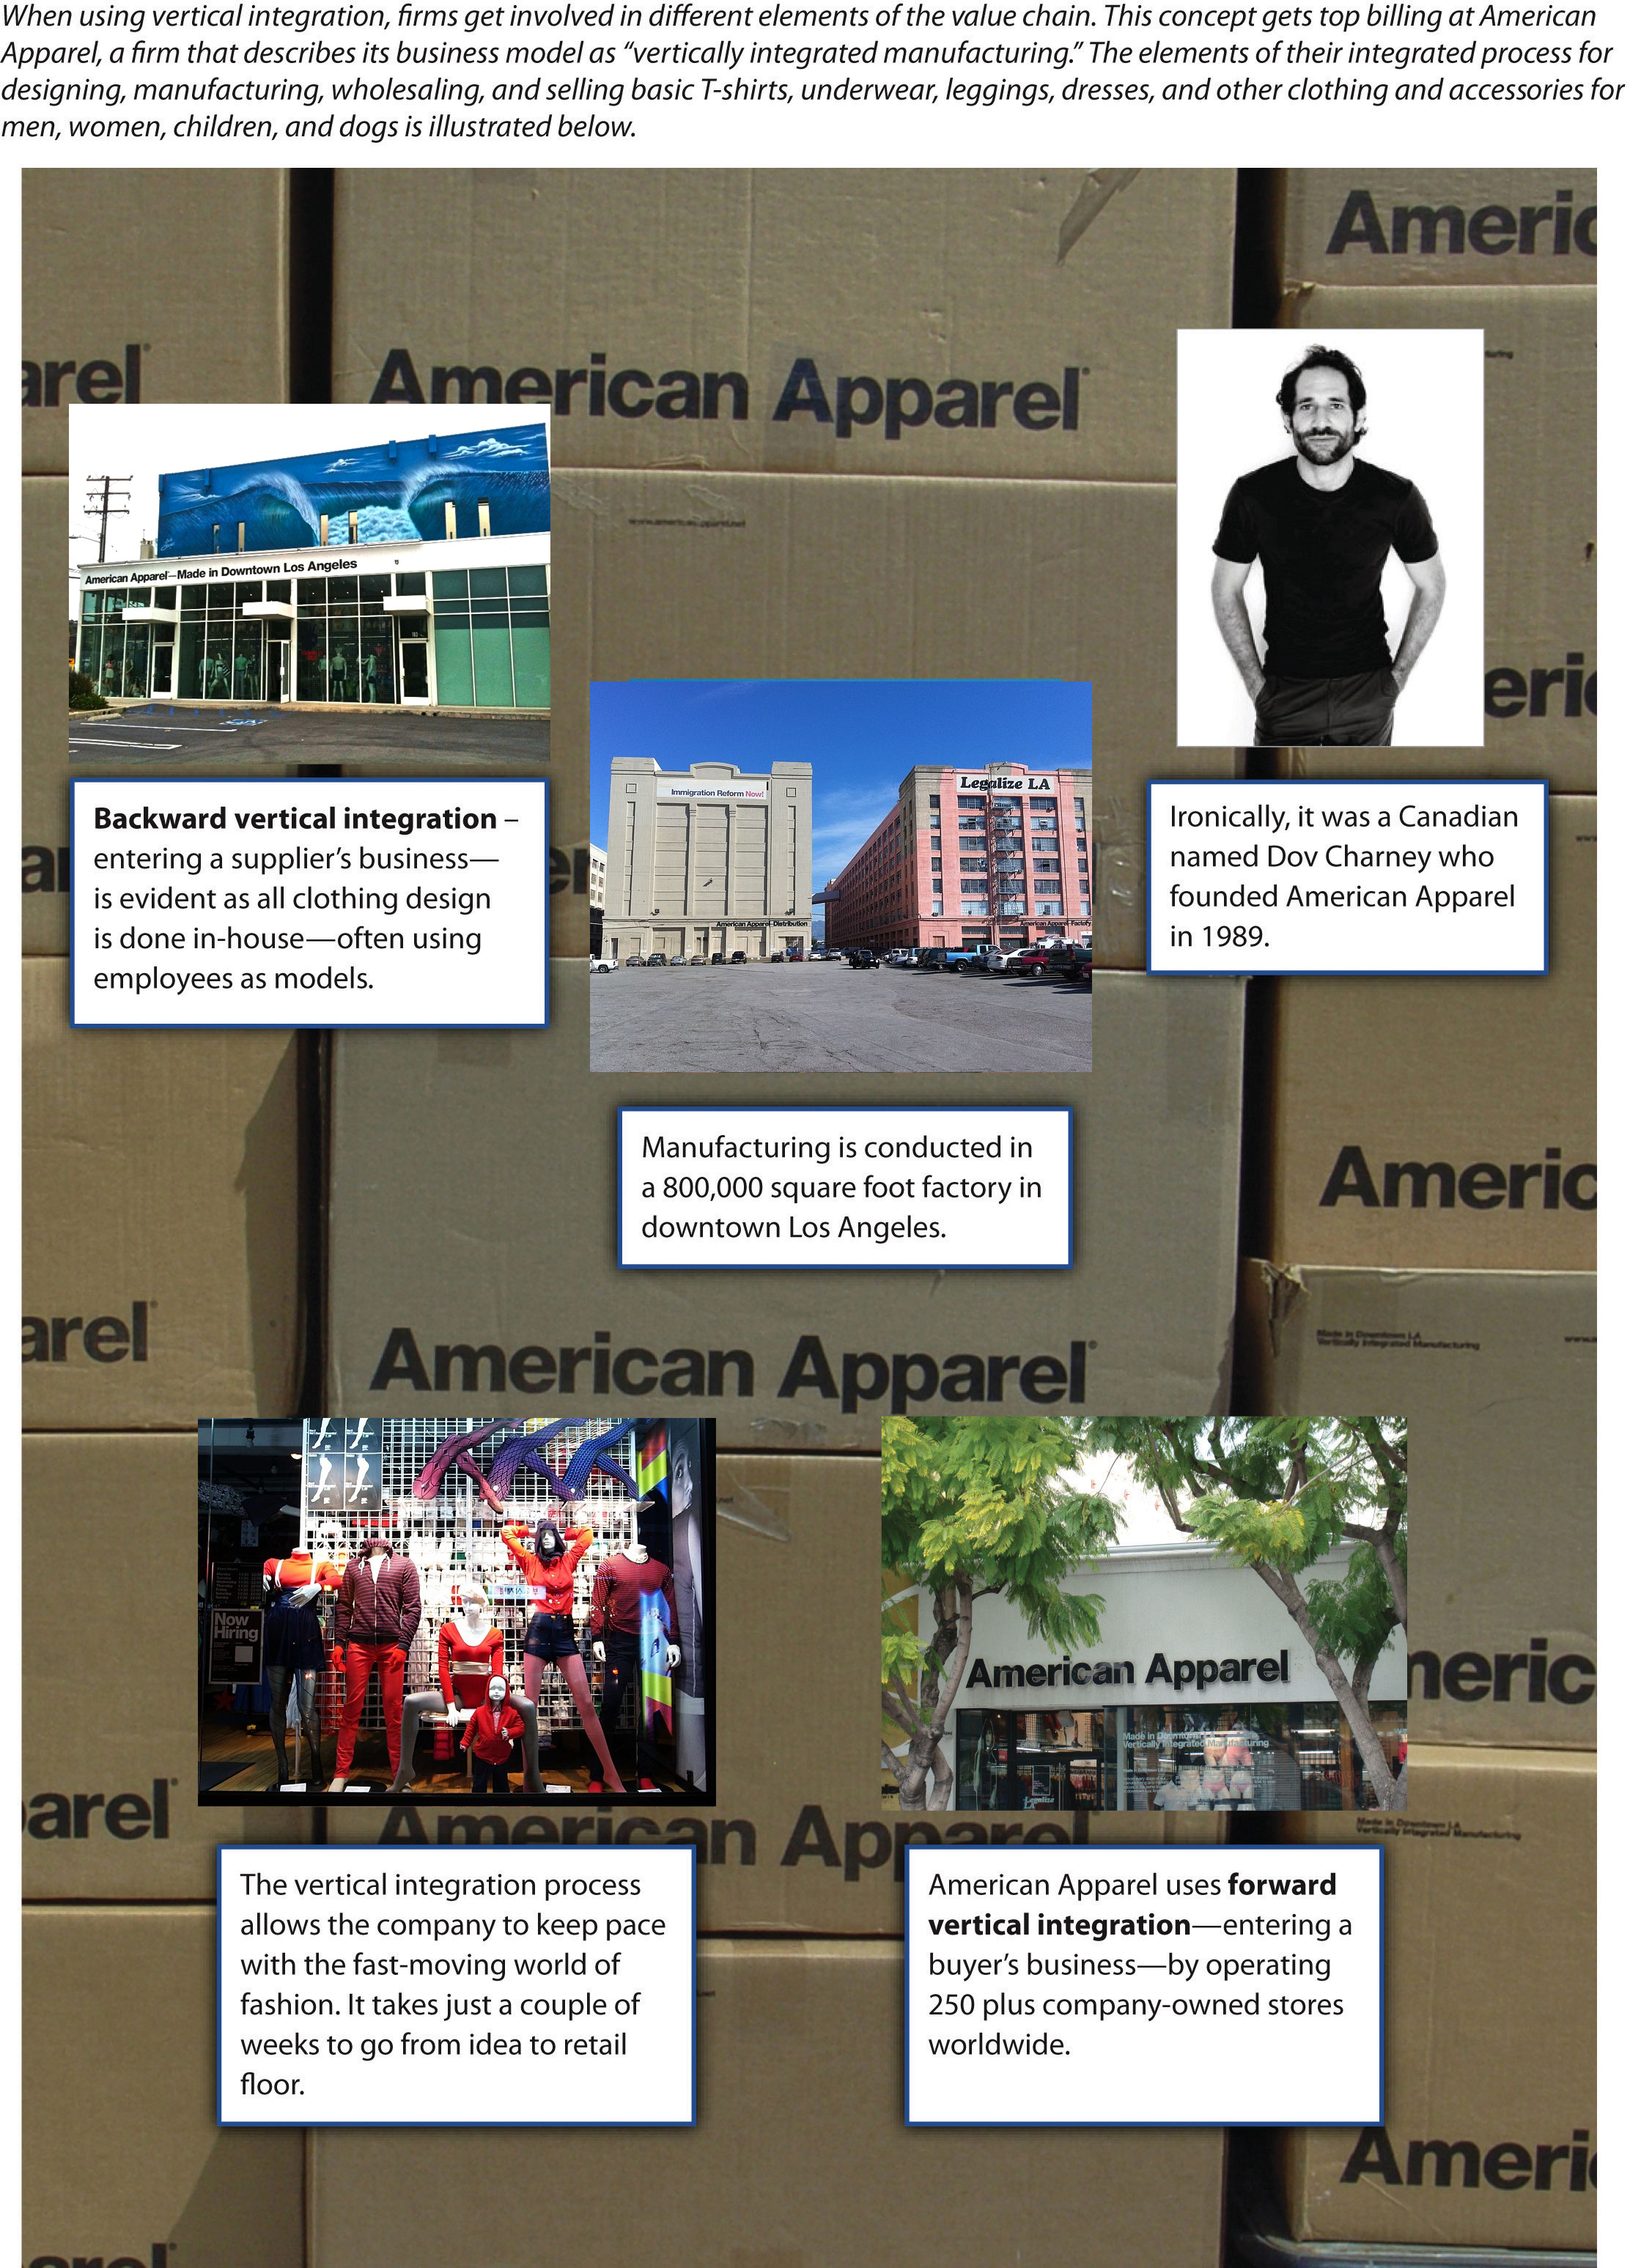 Figure 8-7: Vertical Integration at American Apparel